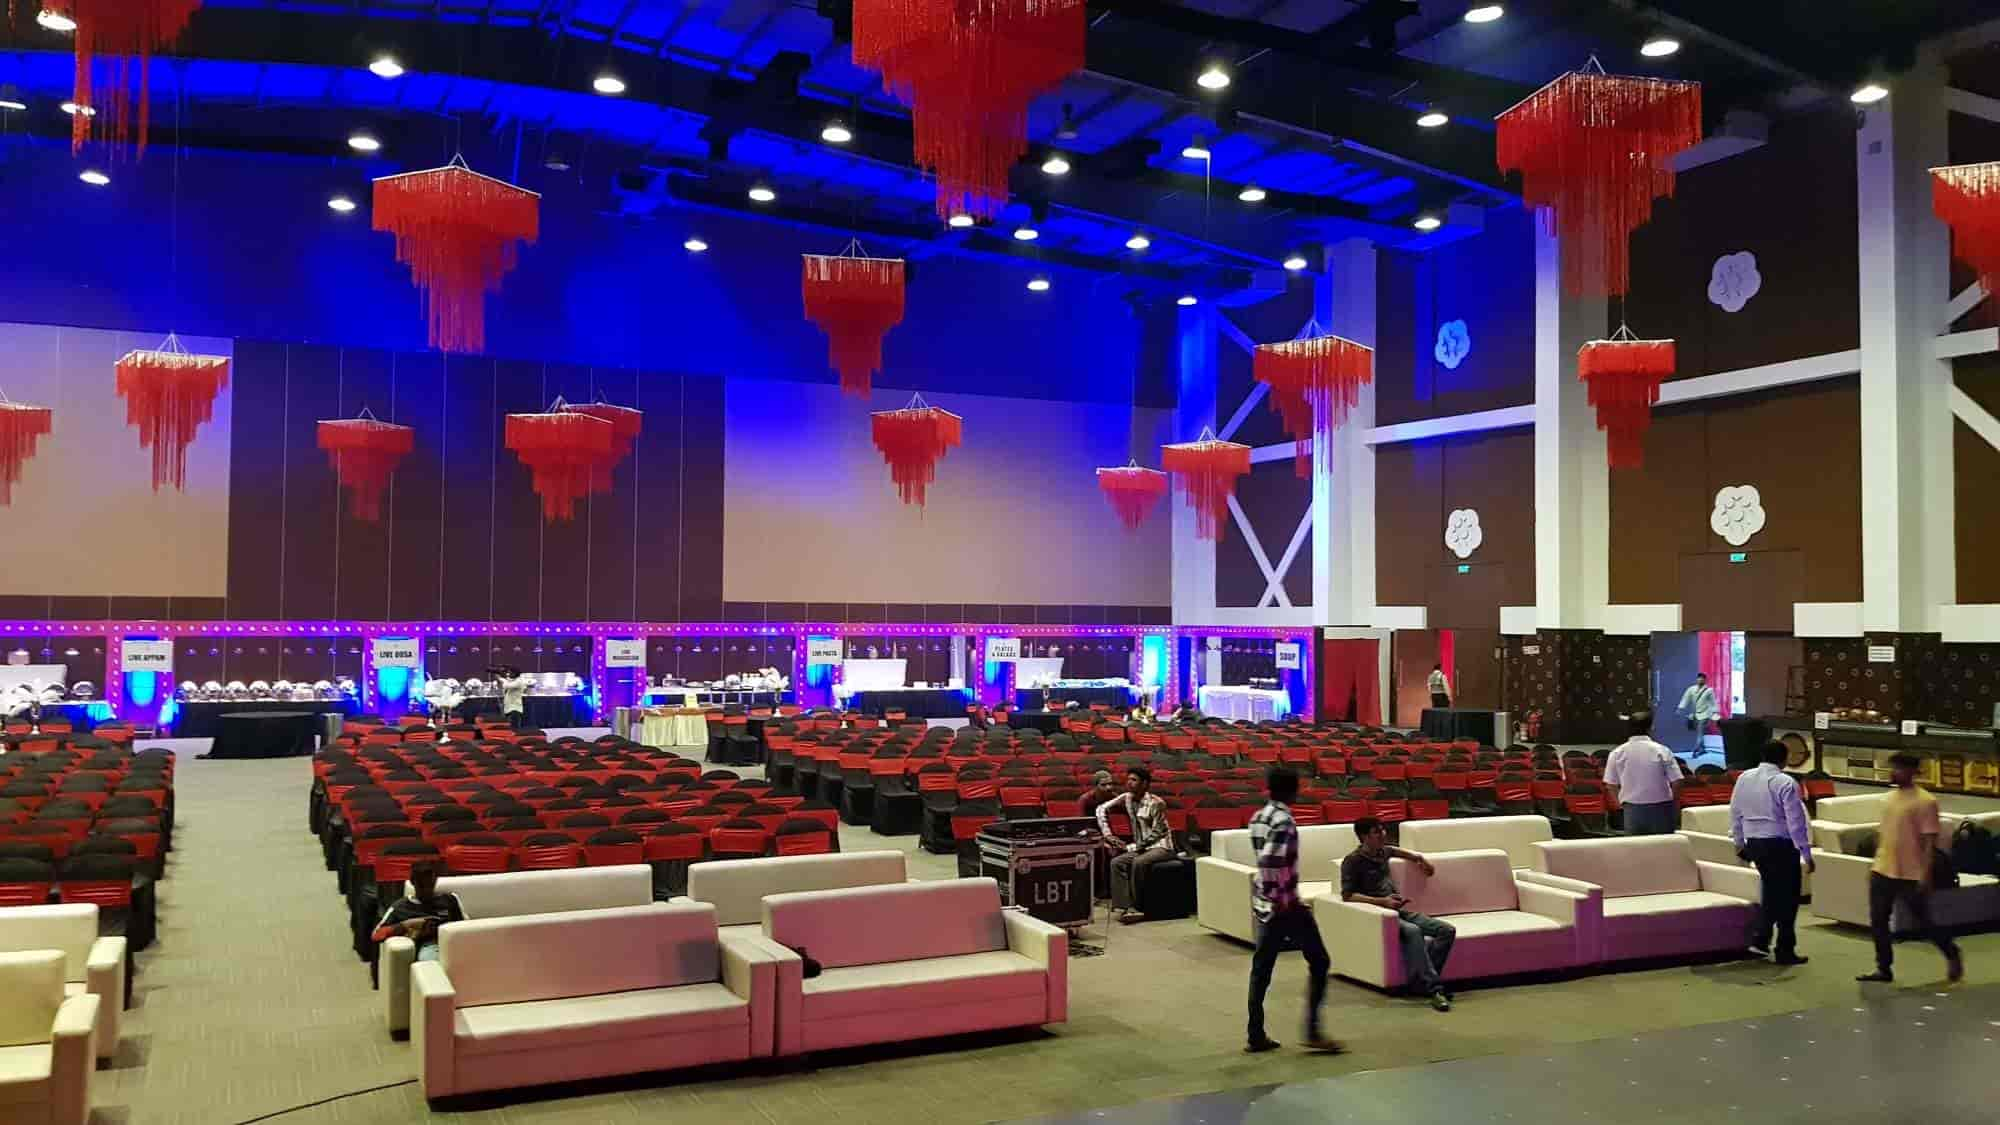 Noble Tents Events Photos Toli Chowki Hyderabad- Pictures u0026 Images Gallery - Justdial & Noble Tents Events Photos Toli Chowki Hyderabad- Pictures u0026 Images ...